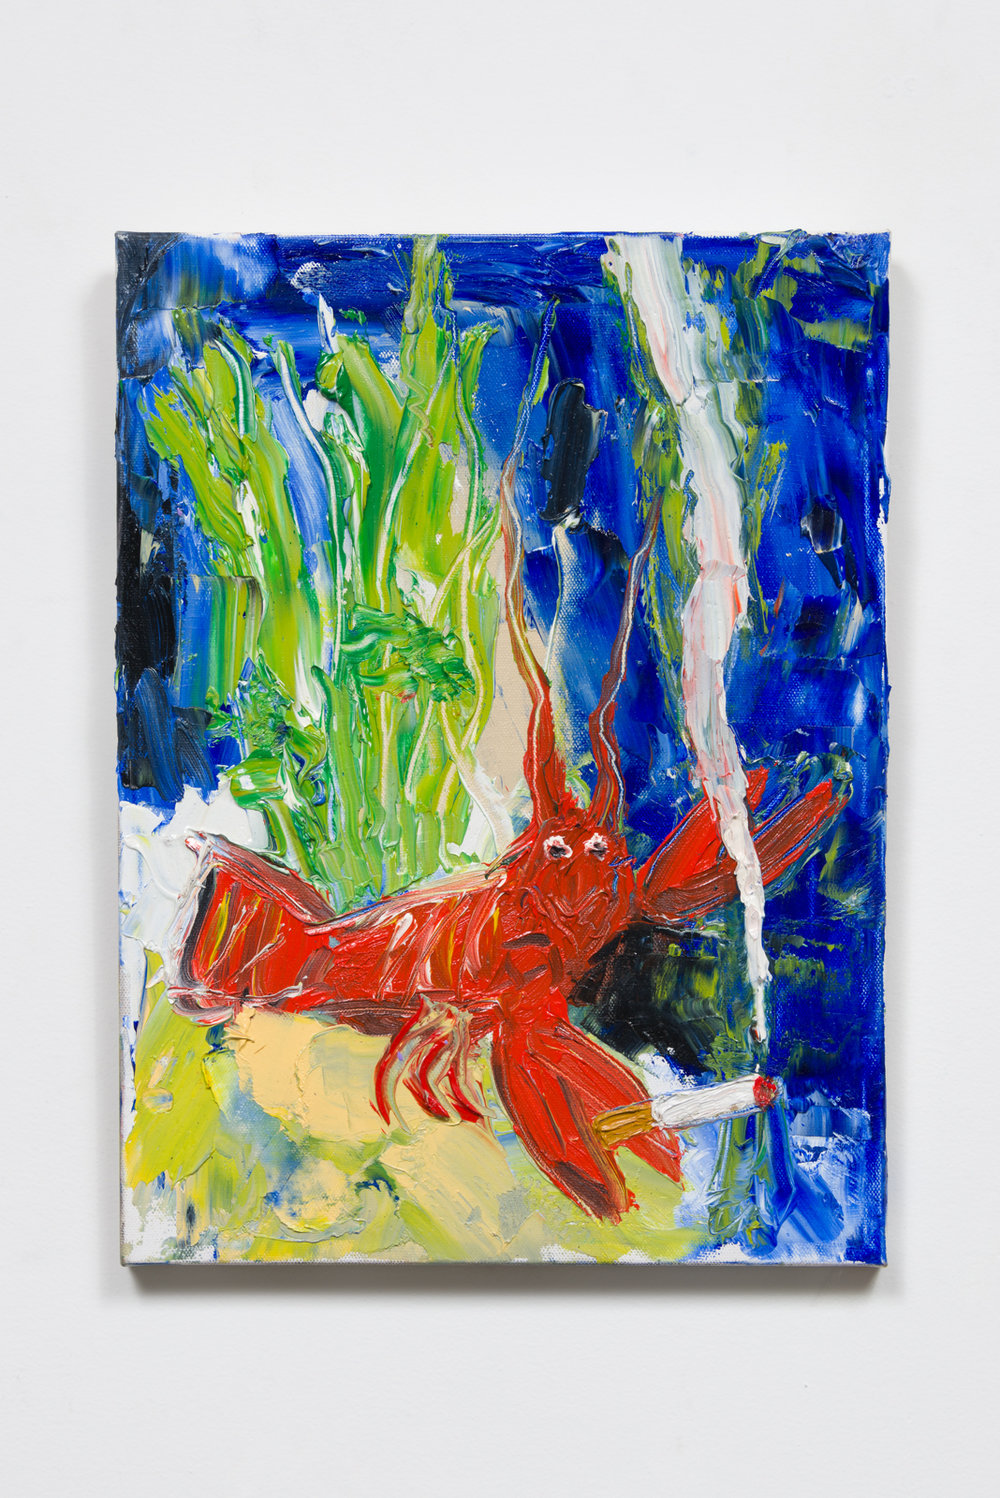 A lobster smoking a cigarette, 2017  Oil on canvas  16 x 12 x 1 inches